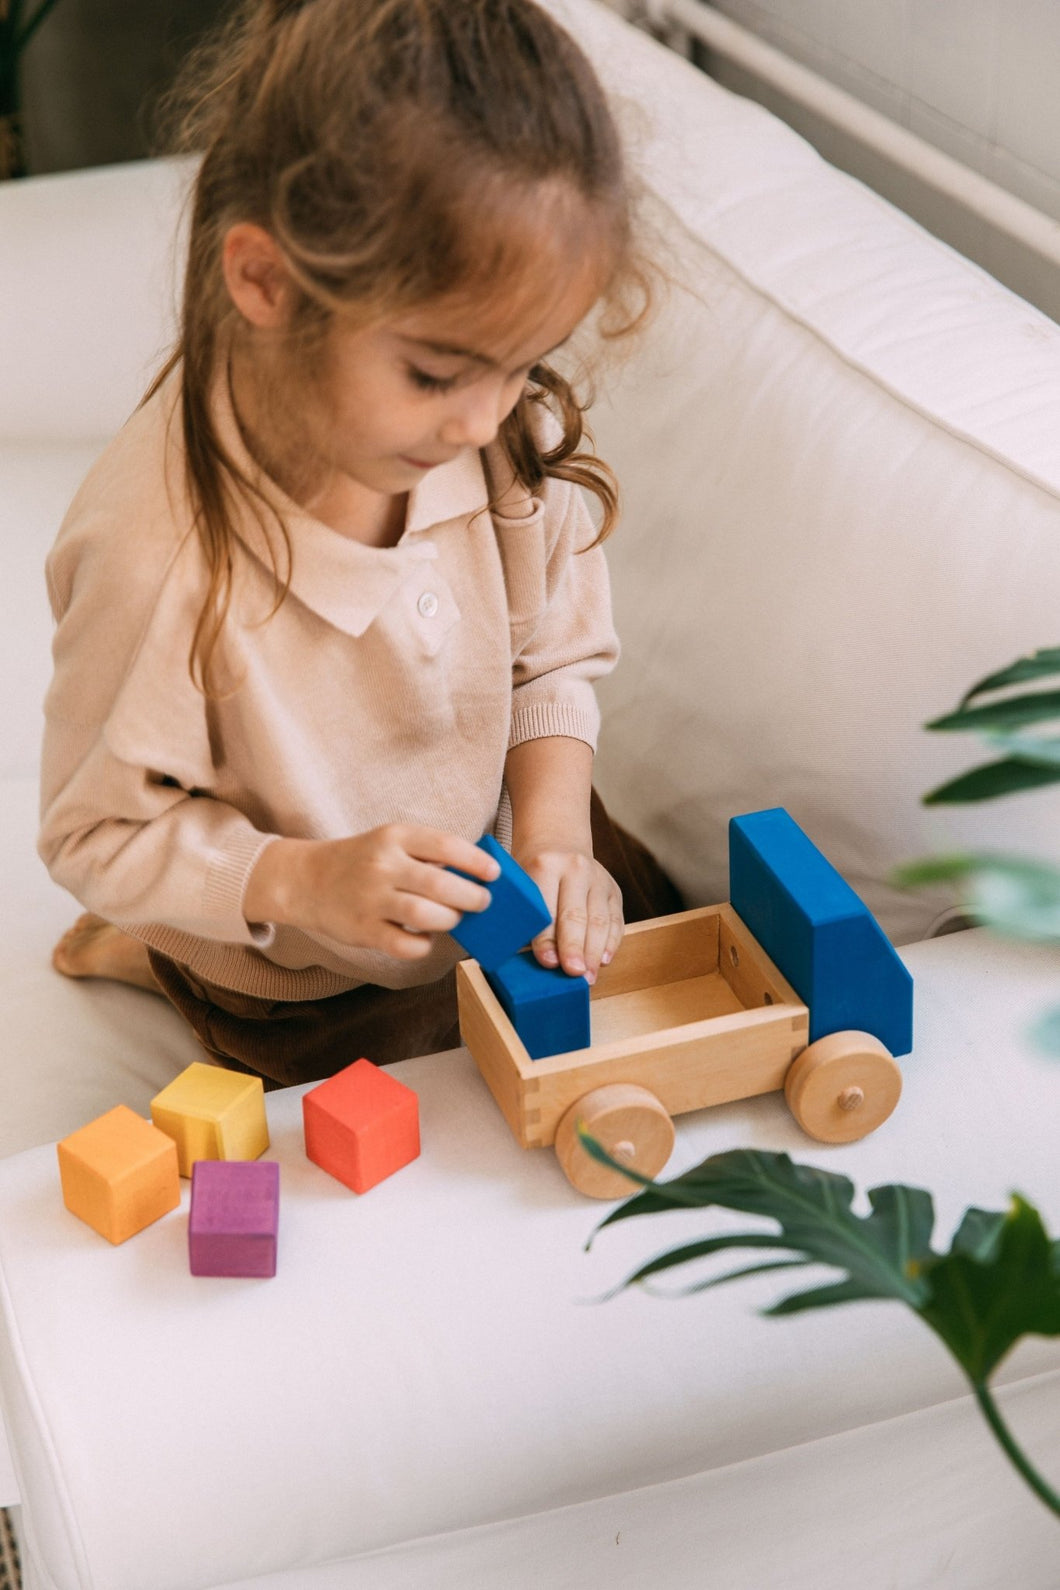 The Wooden Truck by Avdar - Wood Wood Toys Canada's Favourite Montessori Toy Store